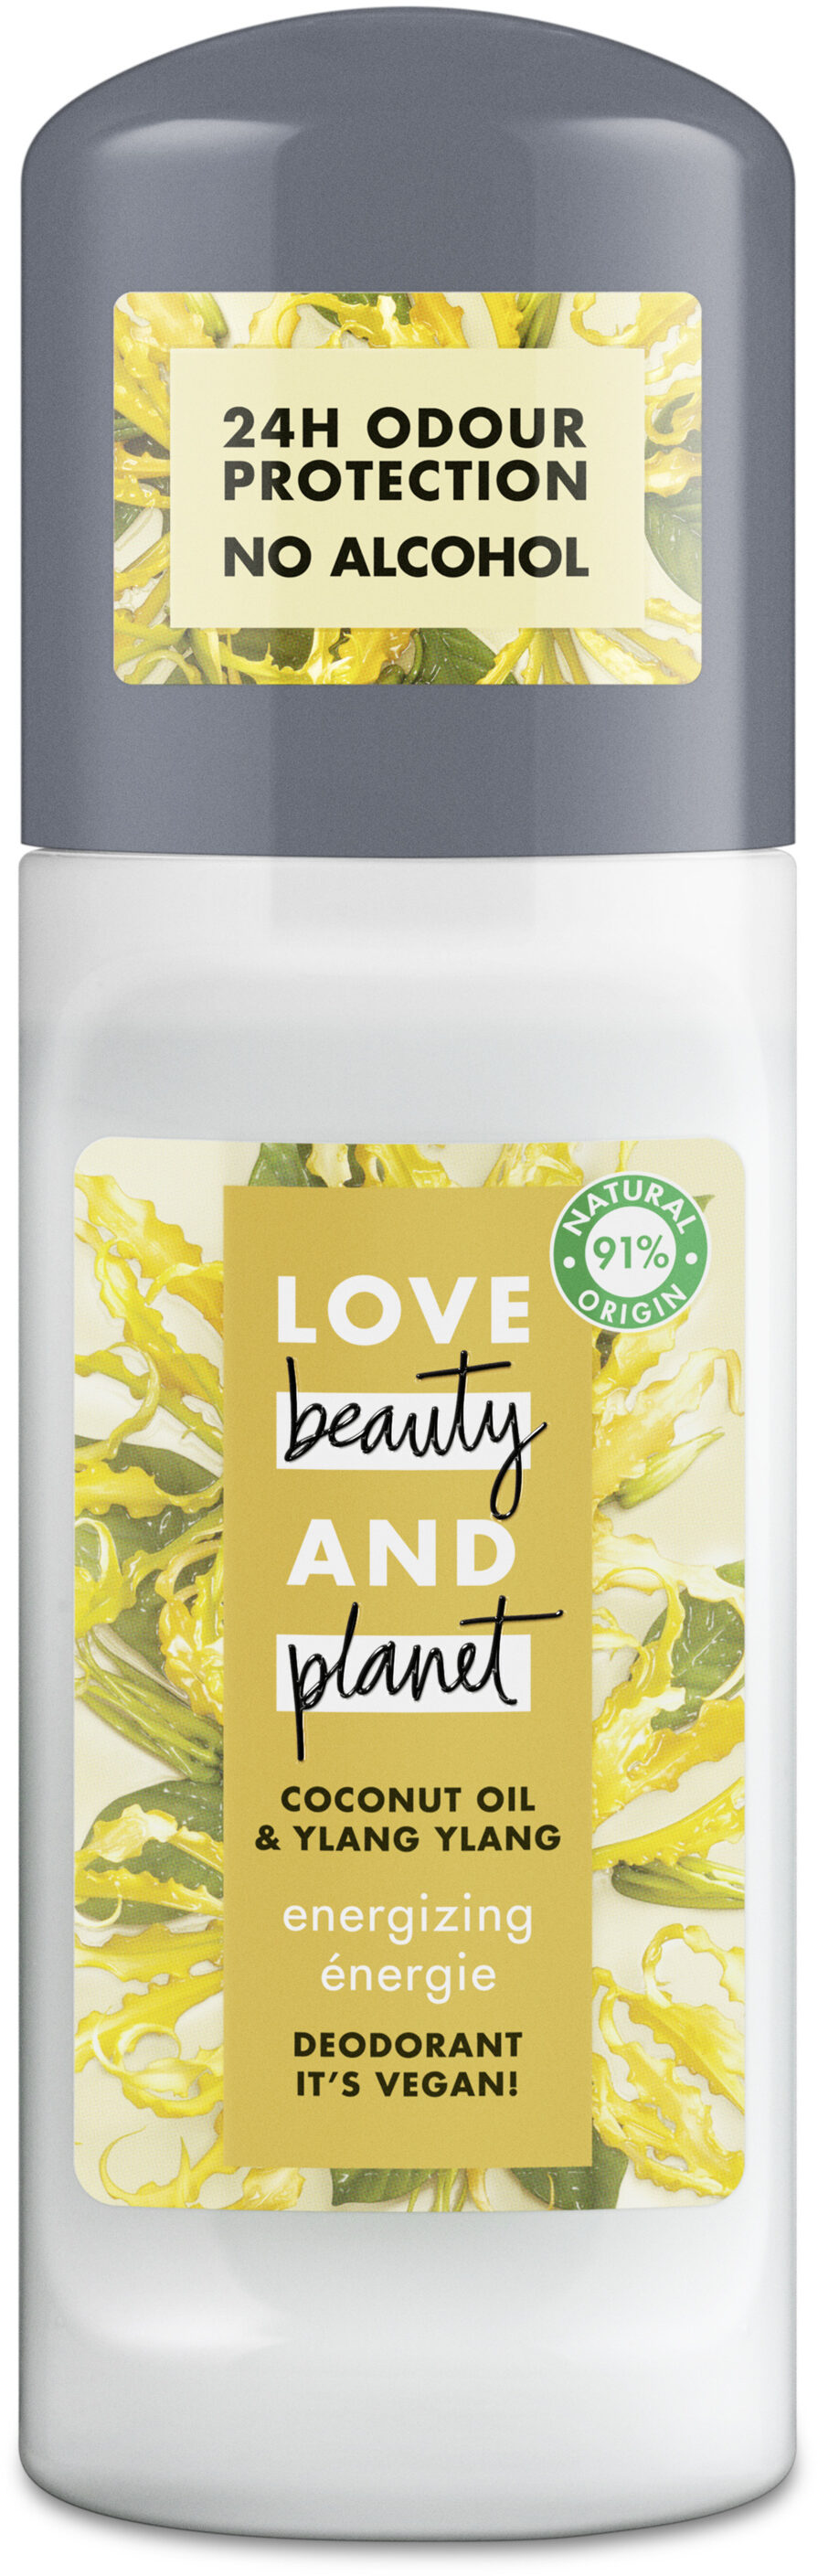 Love Beauty And Planet Déodorant Bille Énergie - Product - fr